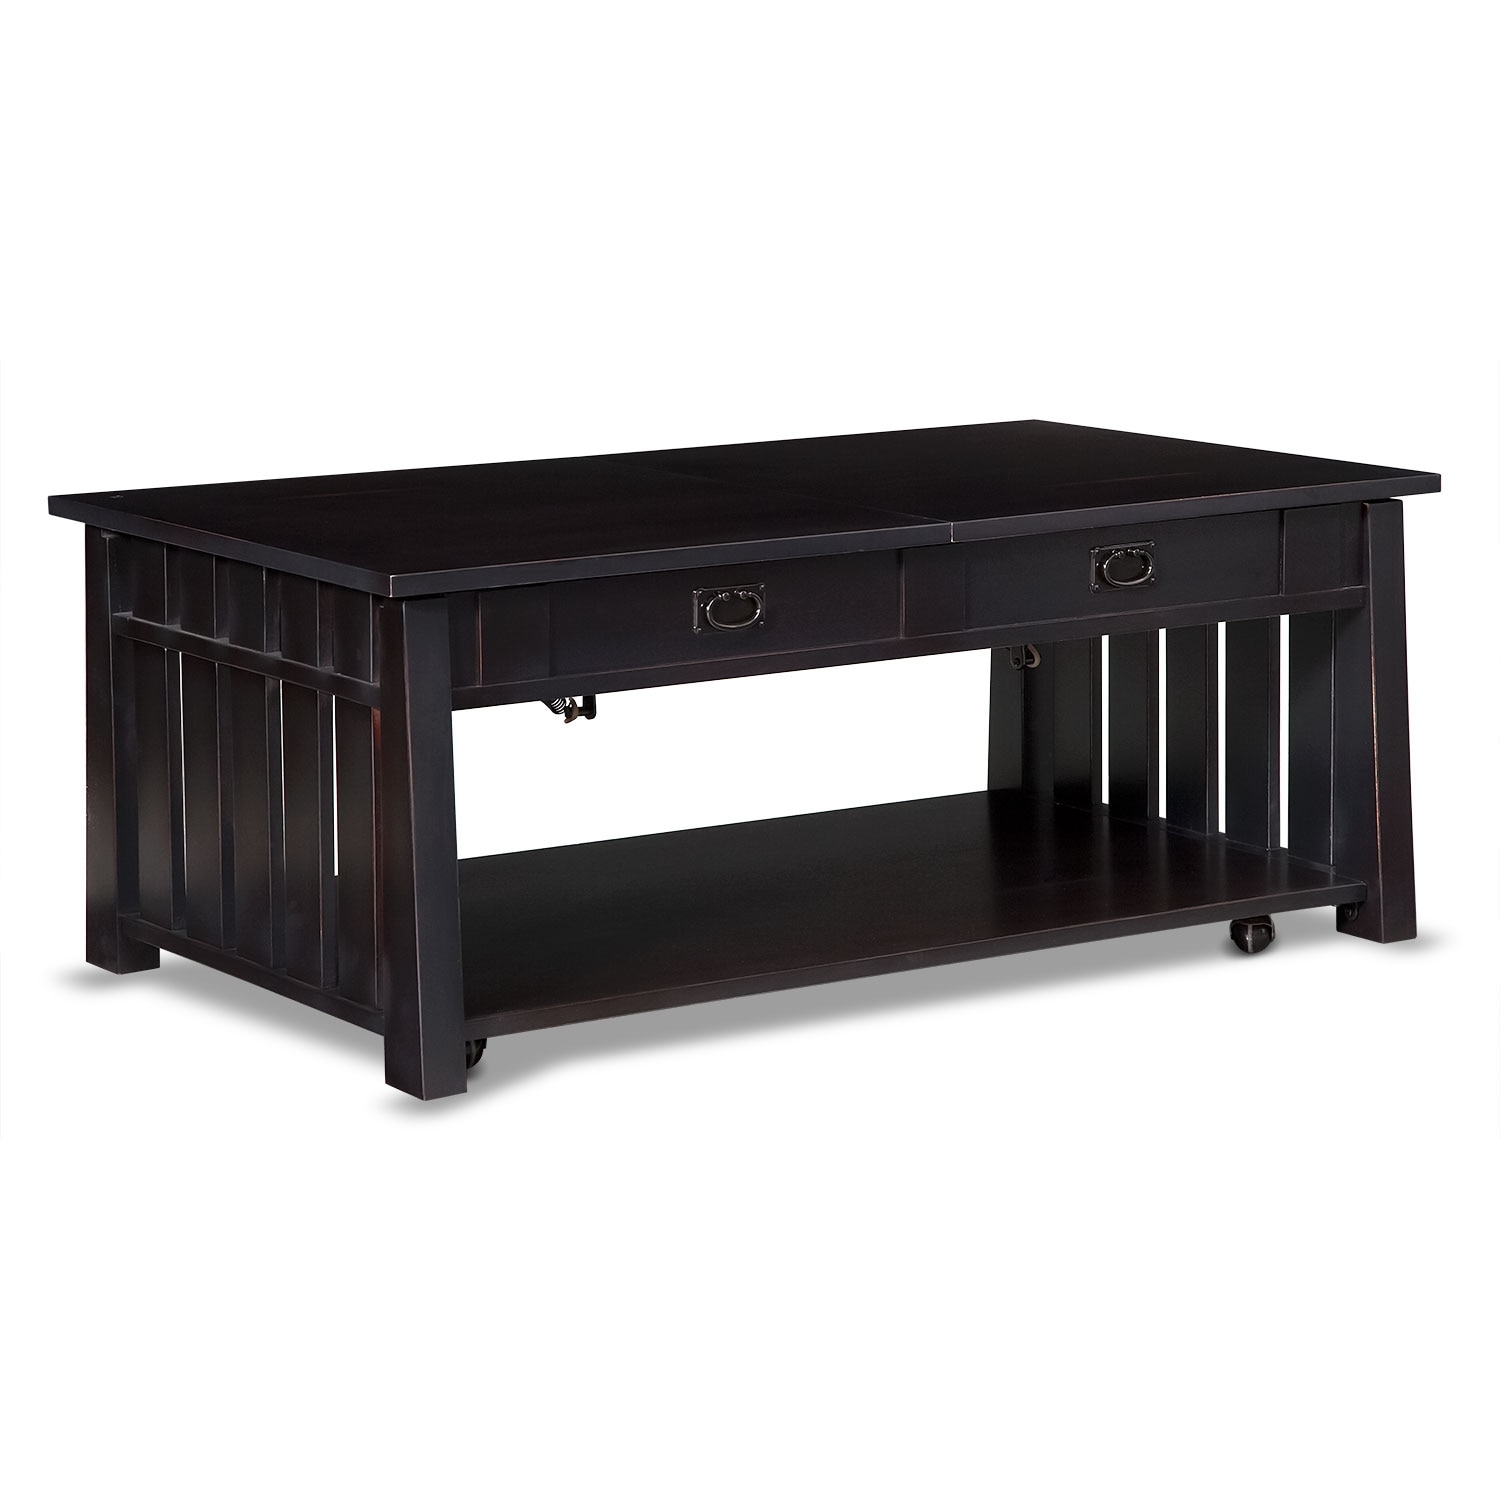 Tribute Lift-Top Cocktail Table - Black - Coffee Tables Living Room Tables American Signature Furniture